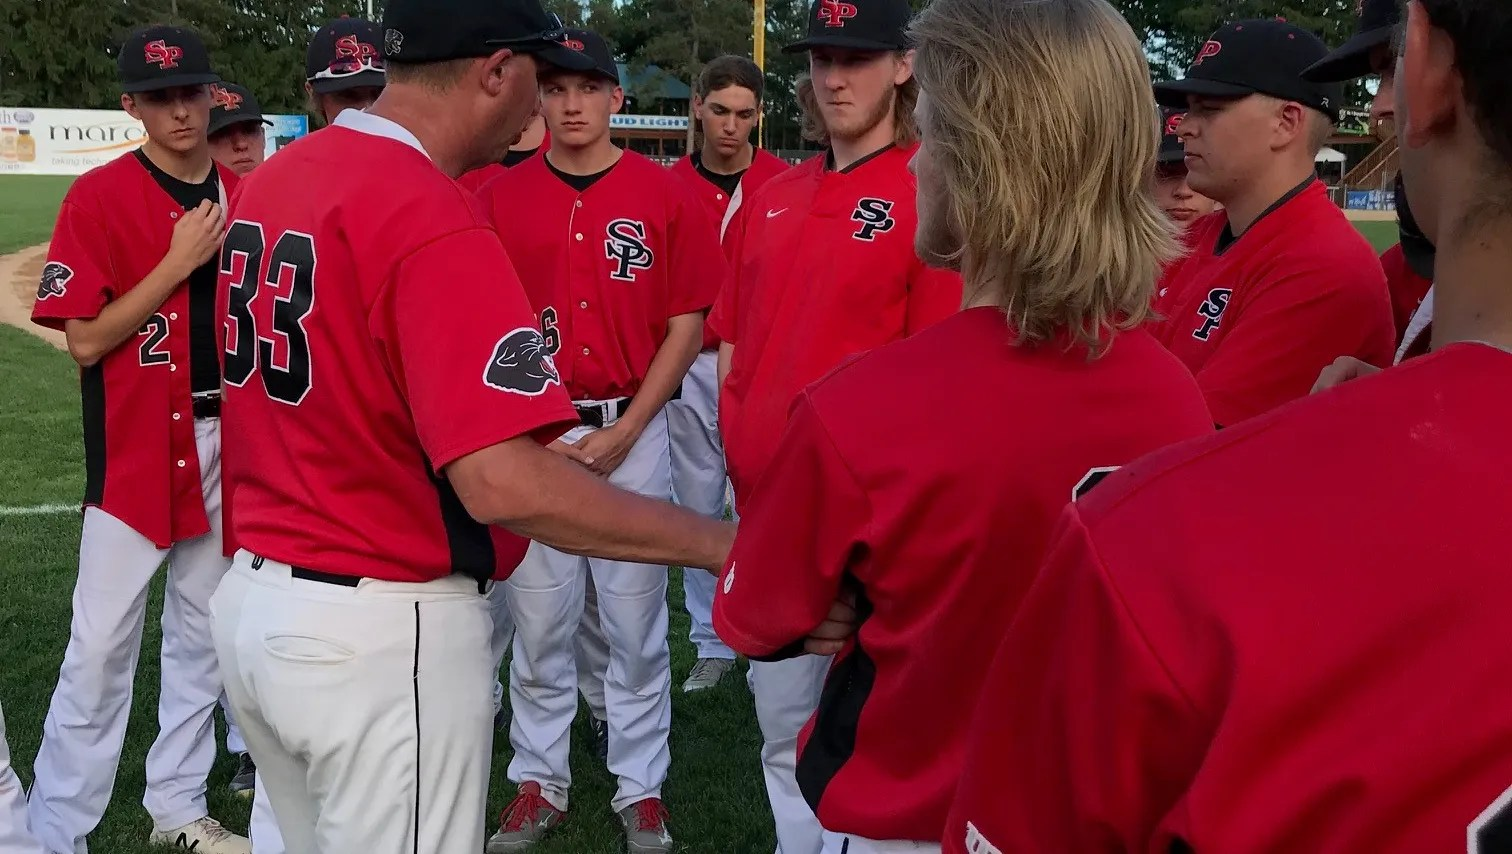 Spash Falls Step Short Of State Baseball Tournament